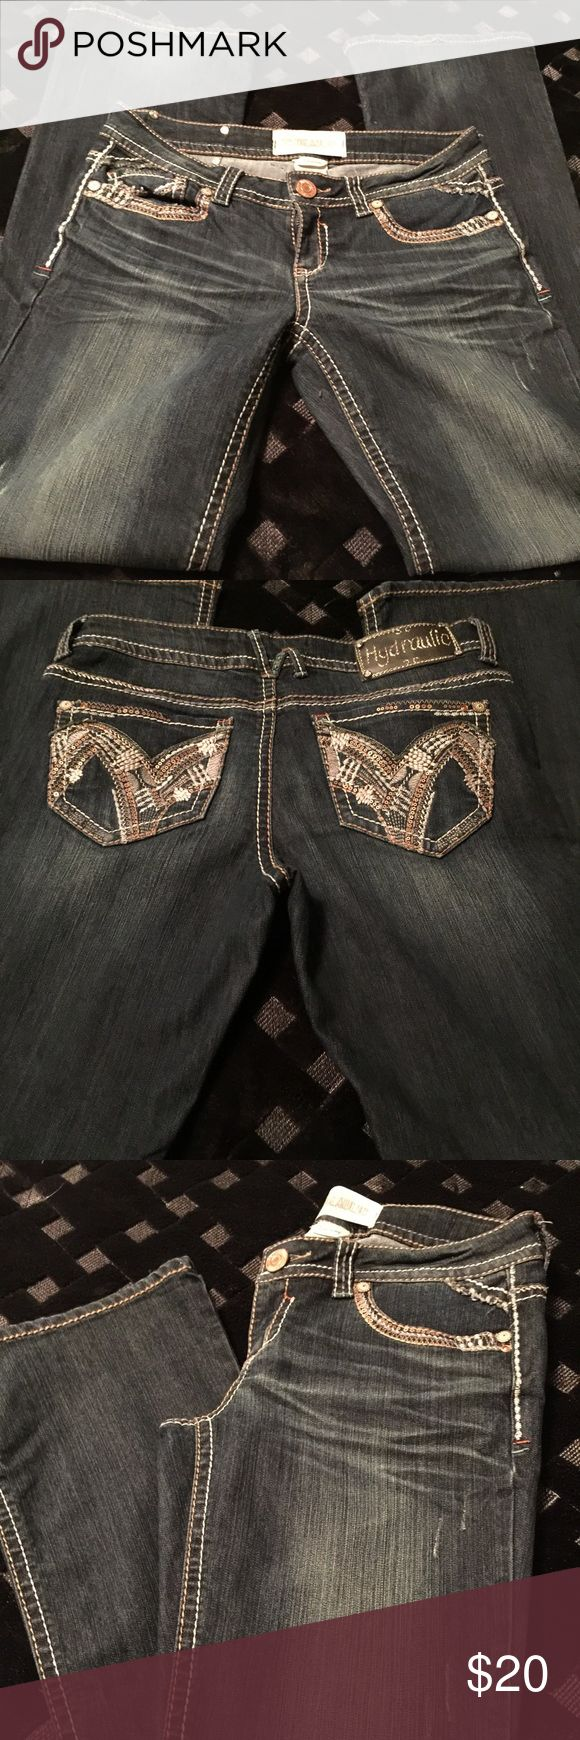 Hydraulic jeans Slightly used dark wash hydraulic jeans.. slight wear on the bottoms.. size 8 Hydraulic Jeans Boot Cut